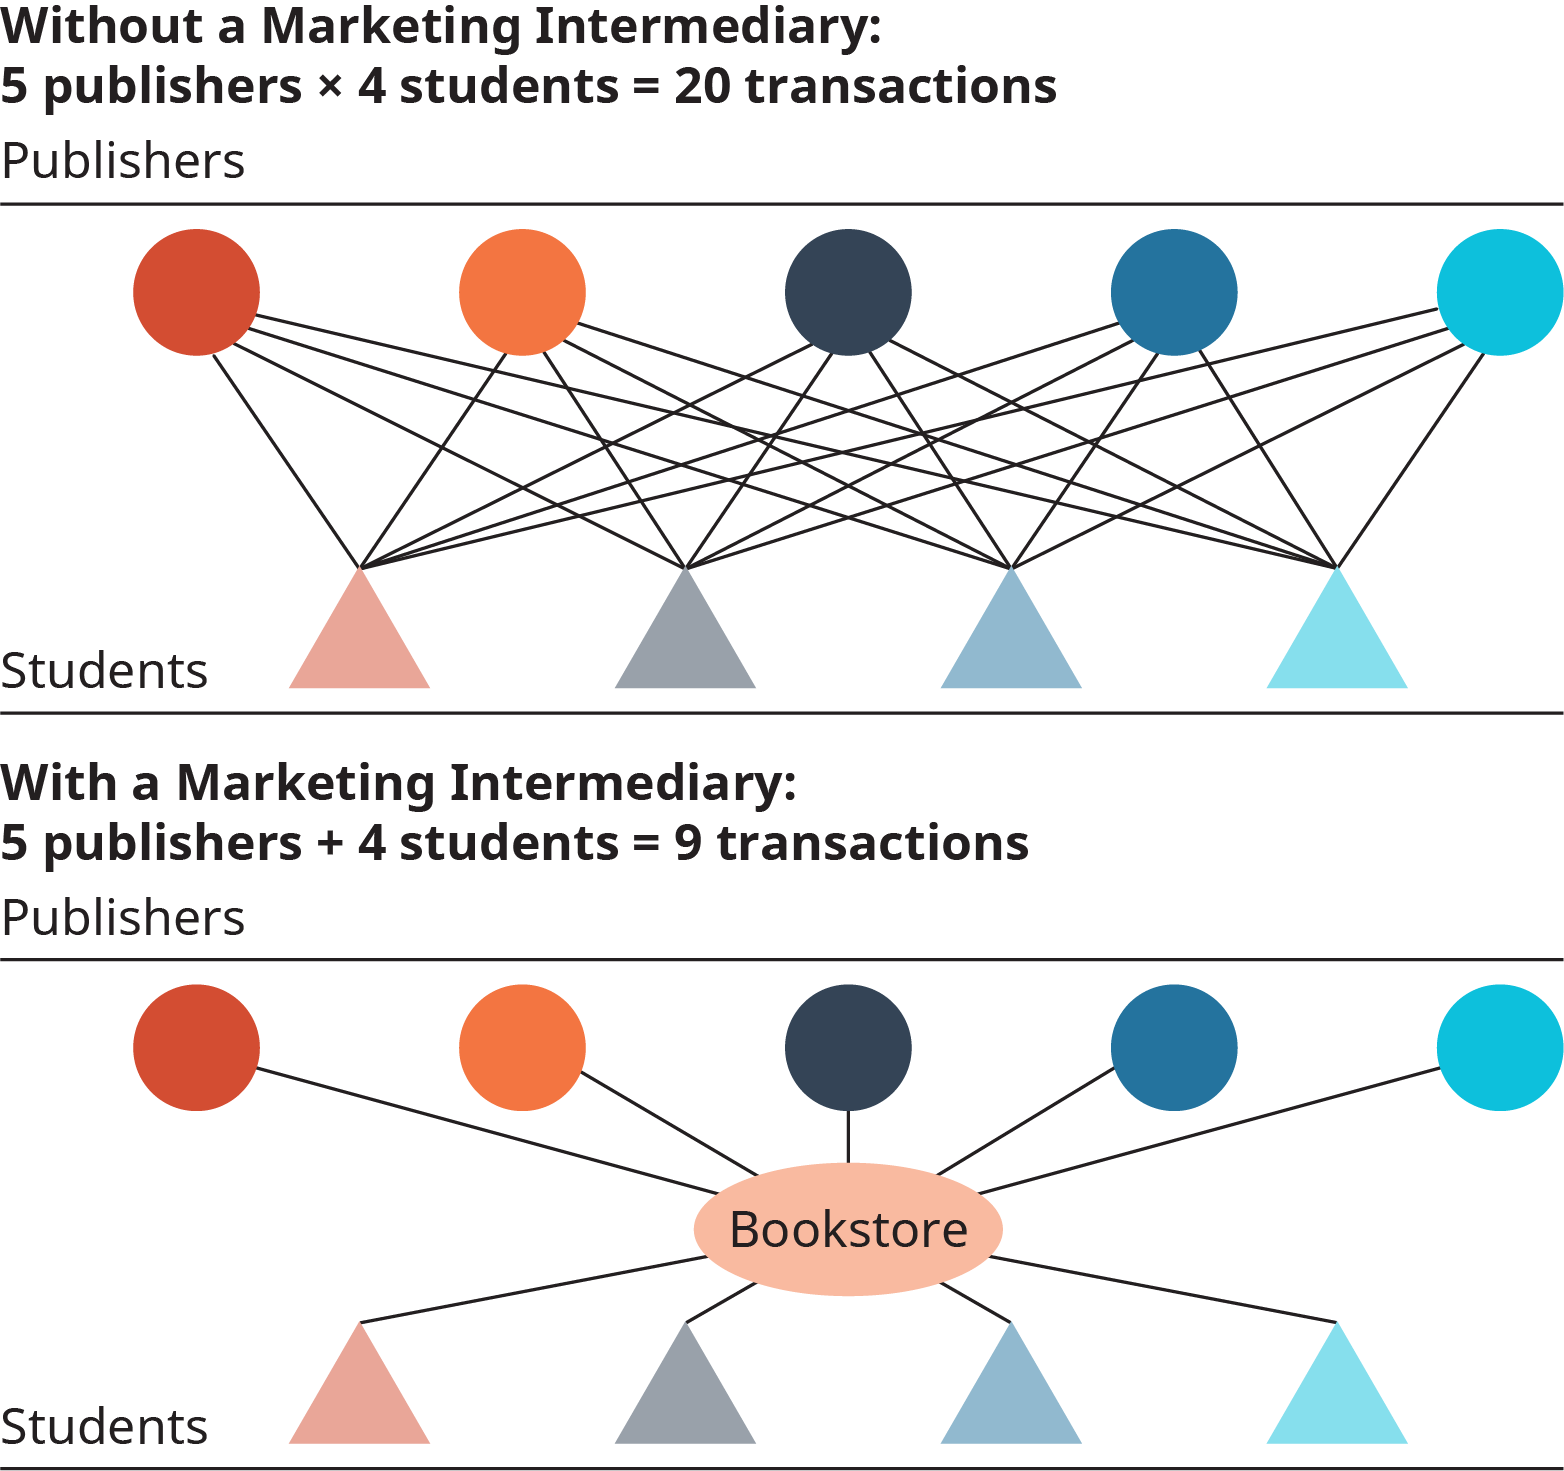 Two diagrams. The first shows transactions between 5 publishers and 4 students without a marketing intermediary. This results in 20 transactions. The second diagram shows 5 transactions between 5 publishers and 4 students with a marketing intermediary (the Bookstore). This results in 9 transactions.